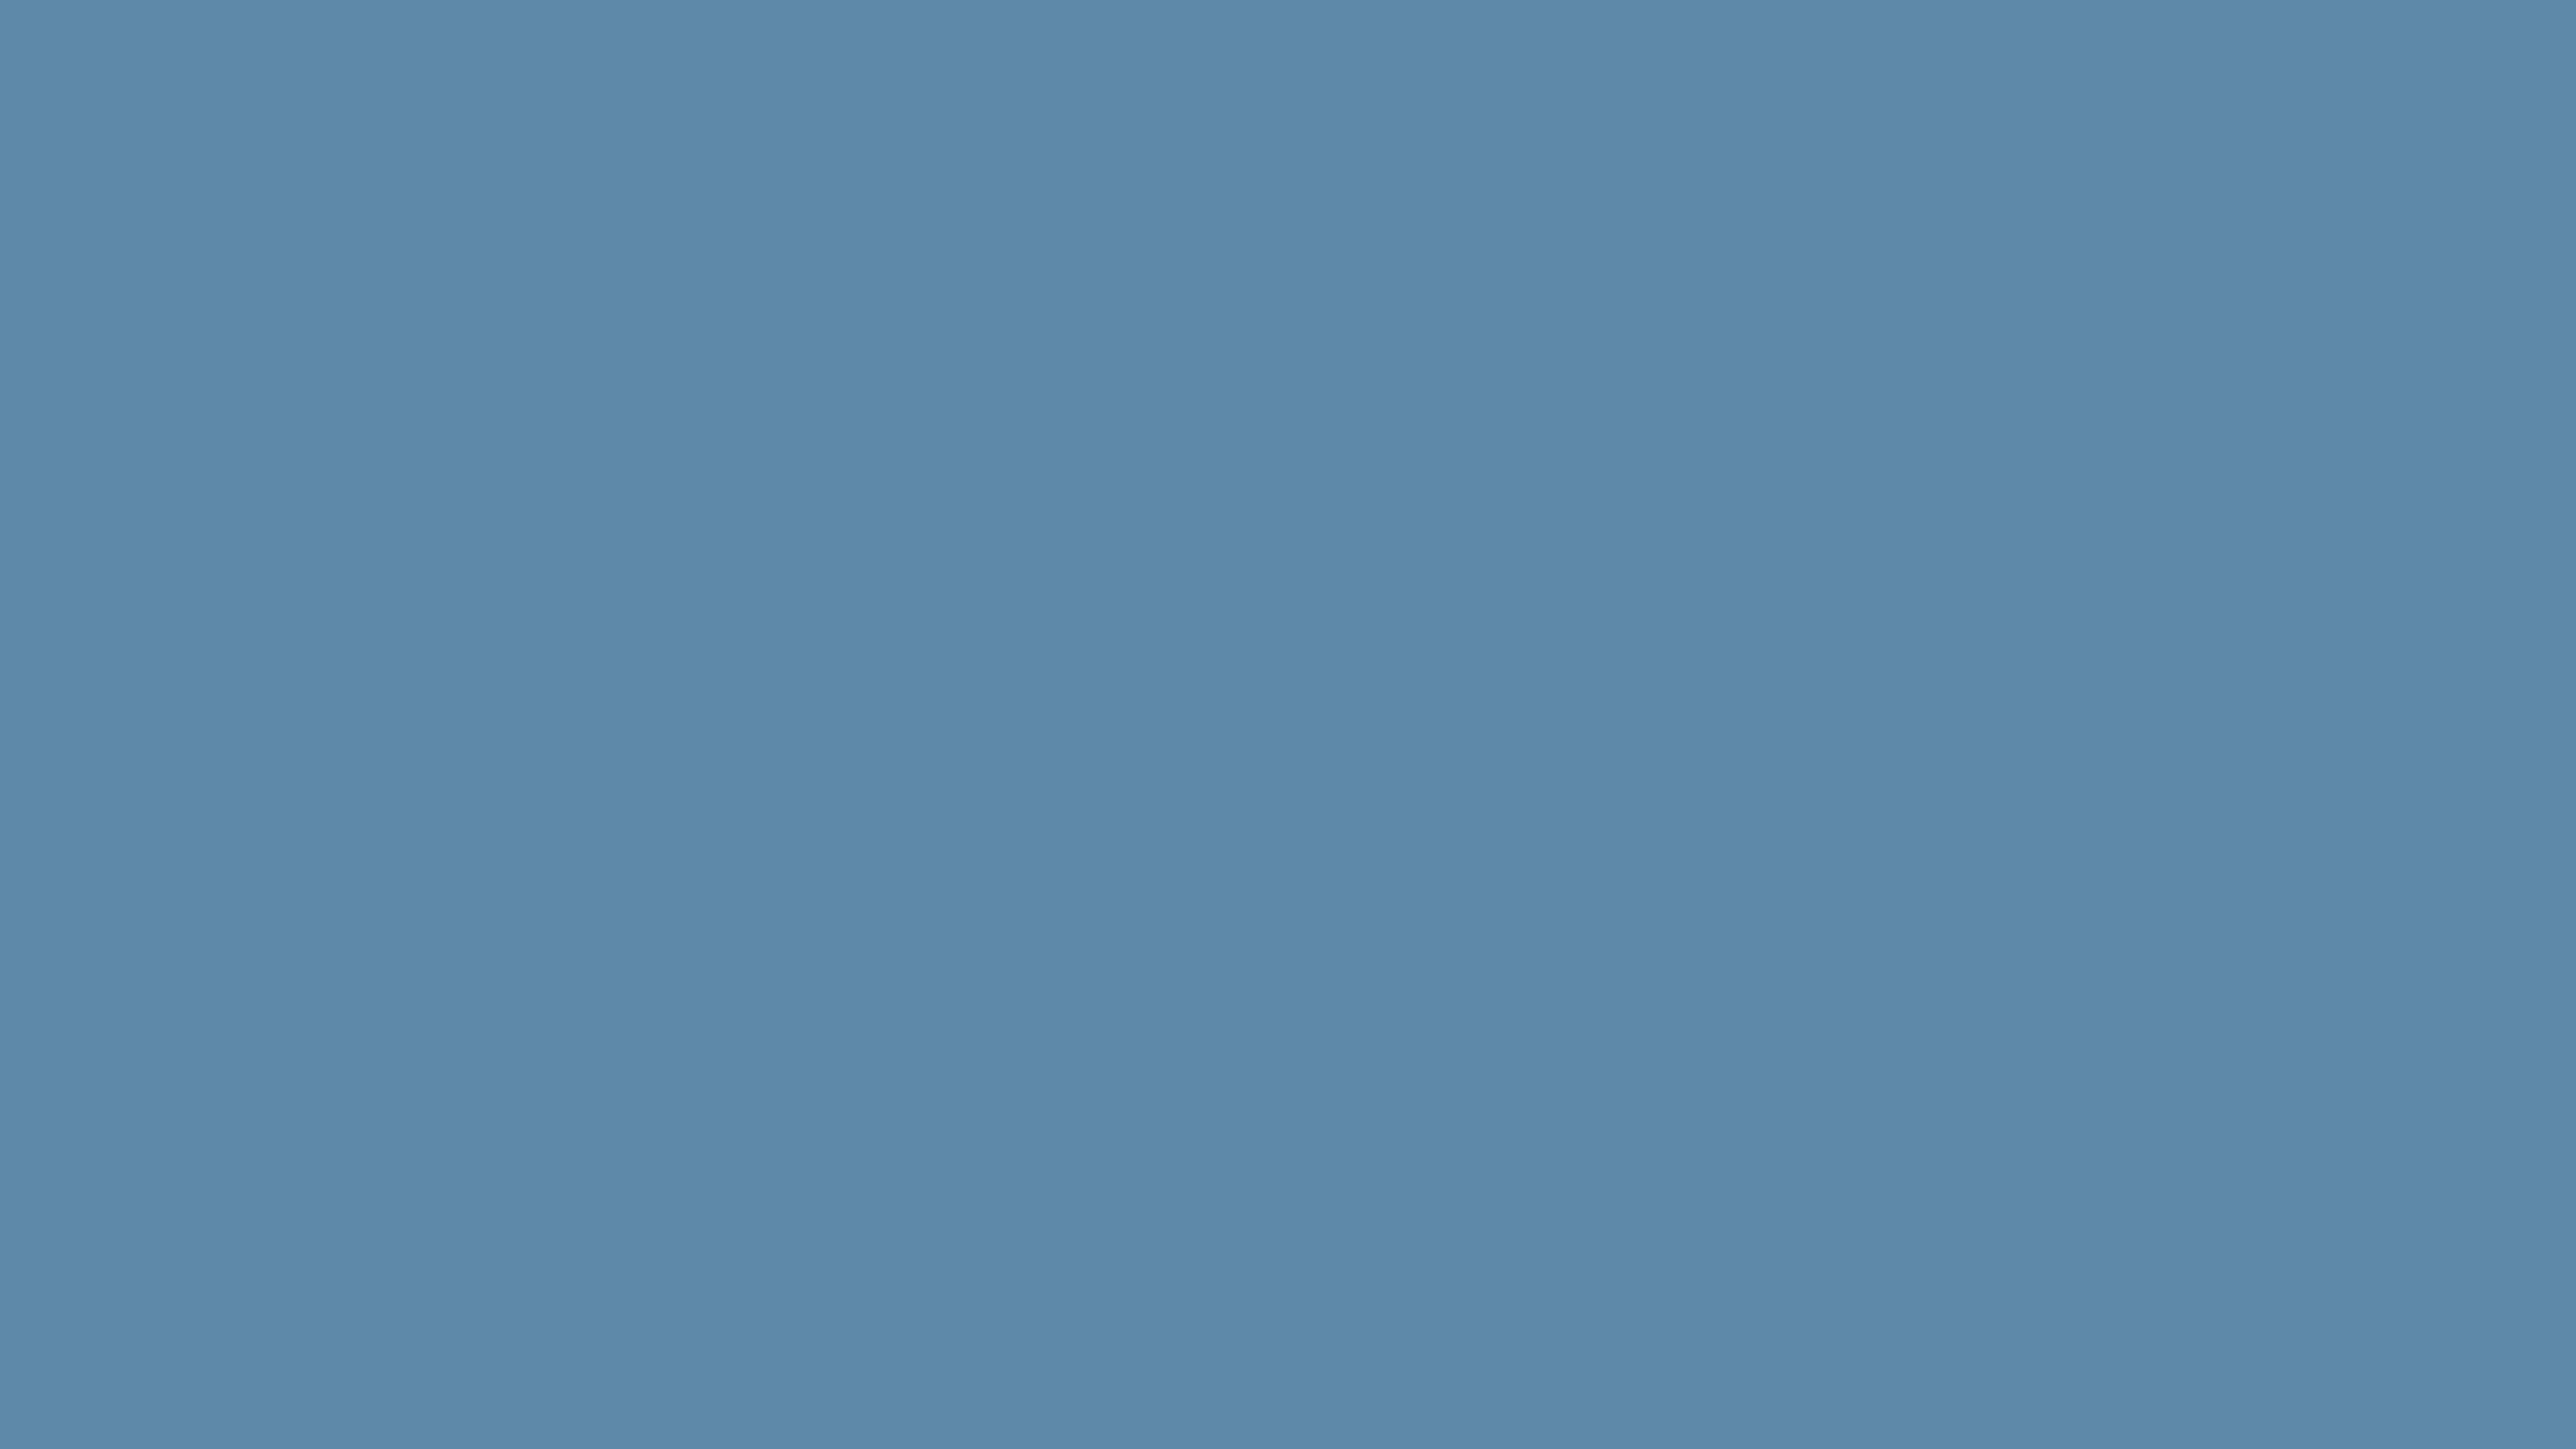 4096x2304 Air Force Blue Solid Color Background